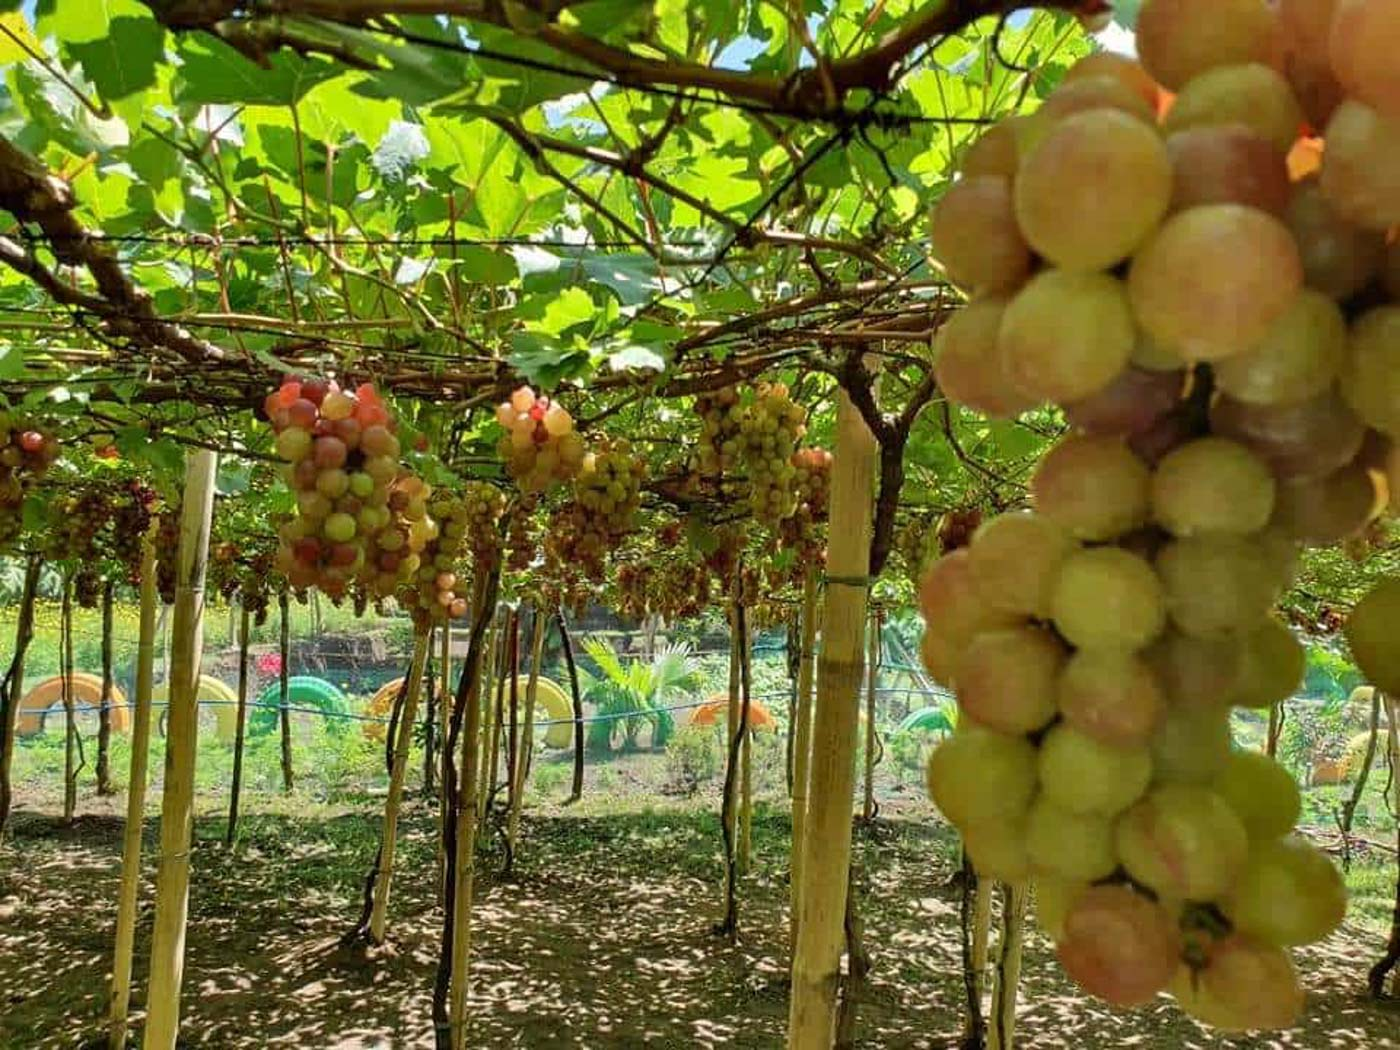 TAKE YOUR PICK.Tourists can pick grapes for a fee. Photo by Rhaydz Barcia/Rappler